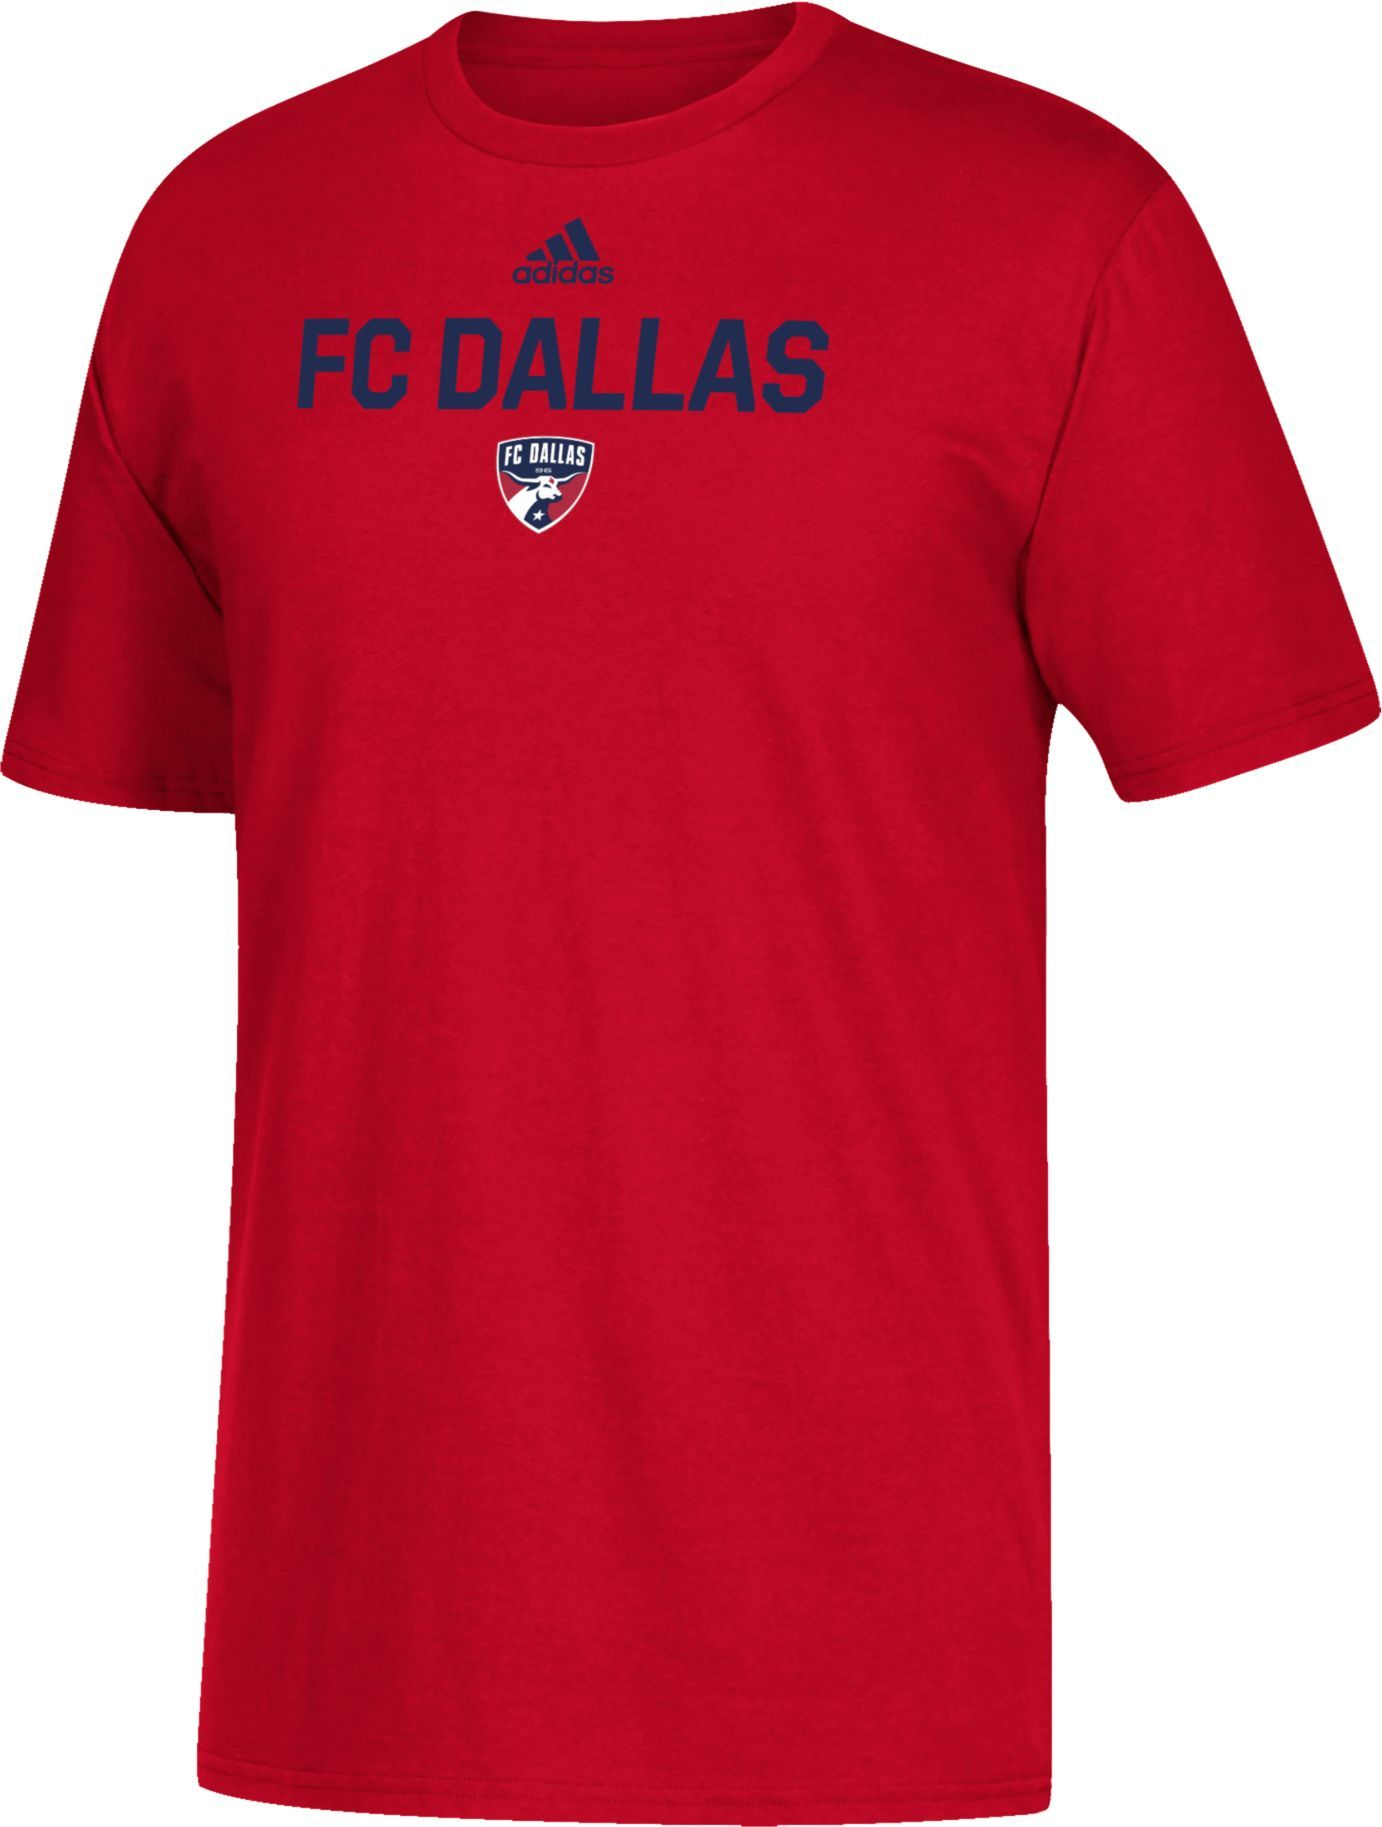 72912090b6d adidas Youth FC Dallas Big Logo Red T-Shirt in 2019 | Products ...